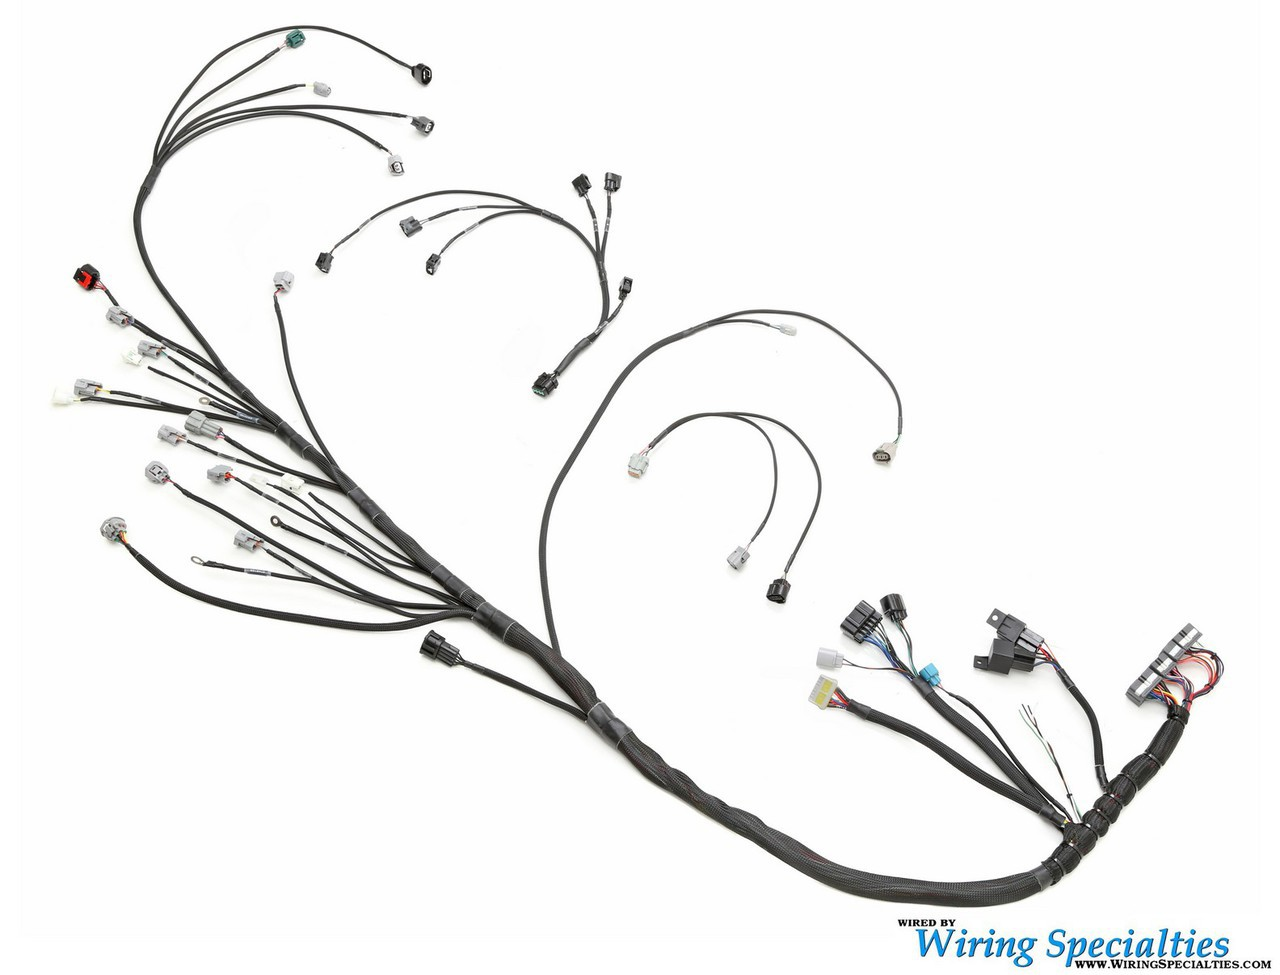 Incredible 1Jz Wiring Harness Install Diagram Wiring Diagram Wiring 101 Mecadwellnesstrialsorg